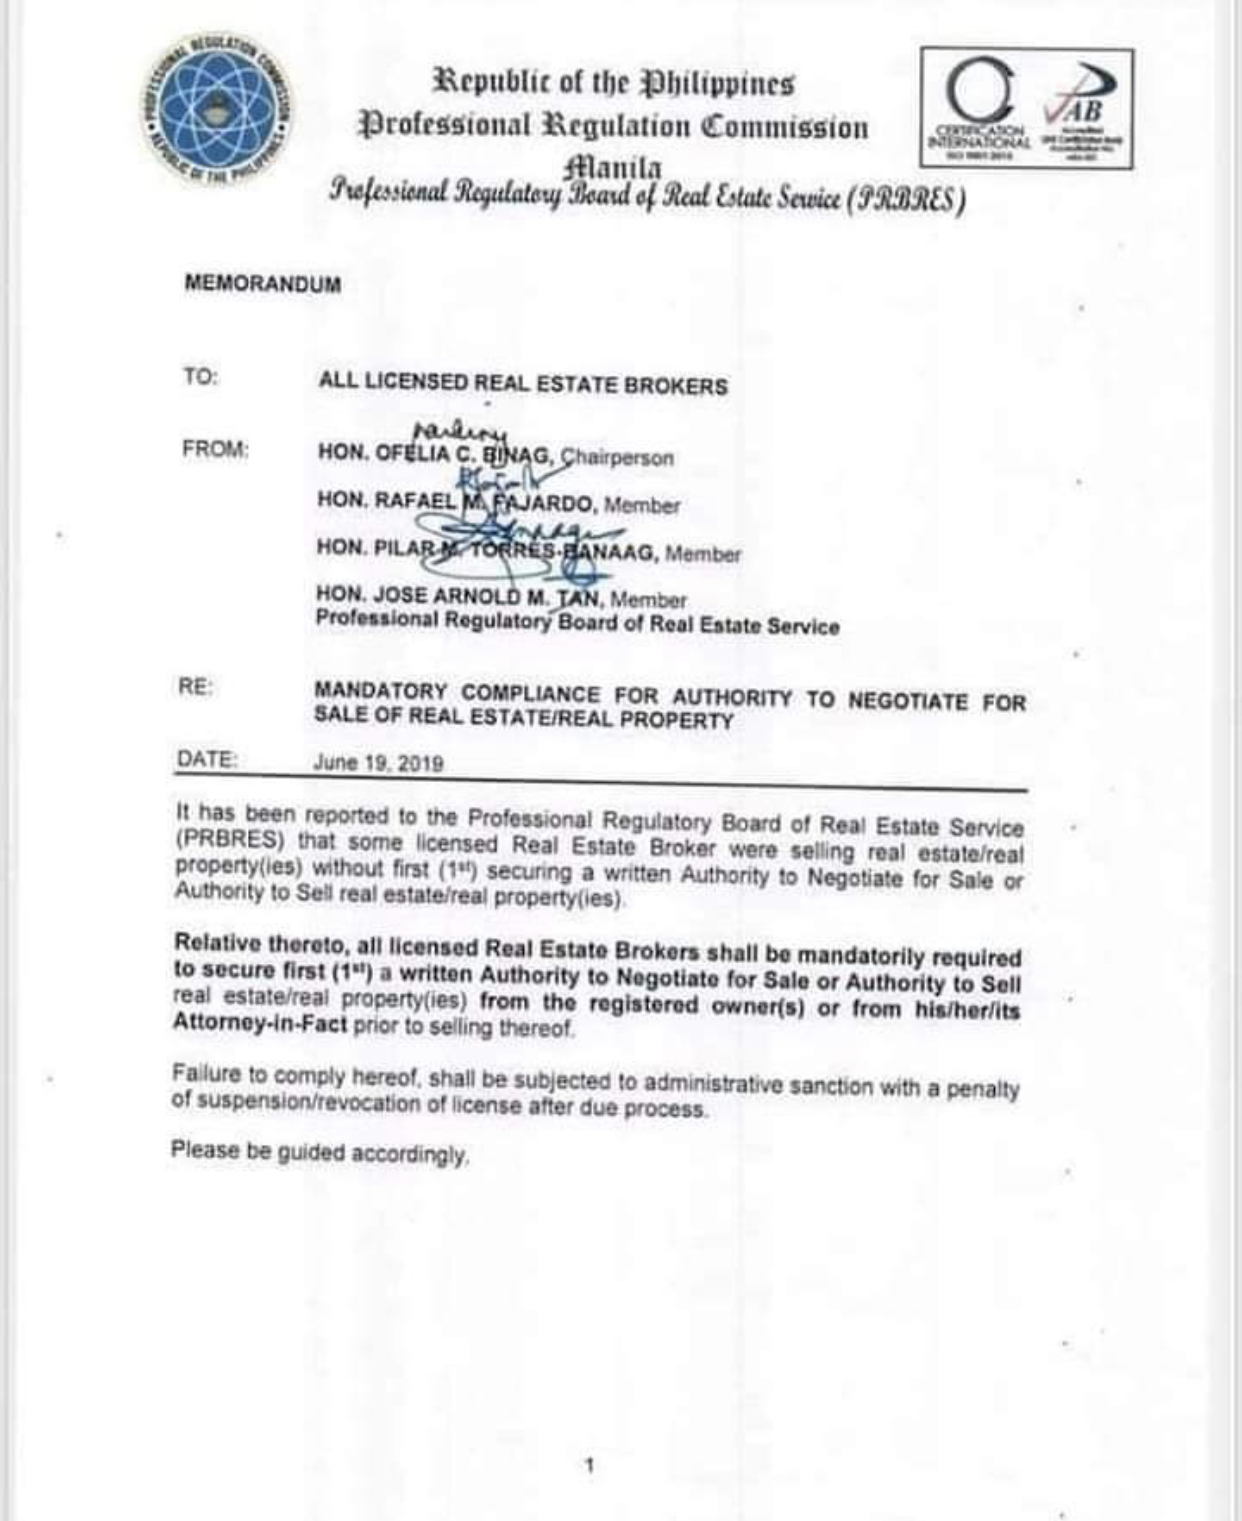 MANDATORY COMPLIANCE FOR AUTHORITY TO NEGOTIATE FOR SALE OF REAL ESTATE/REAL PROPERTY